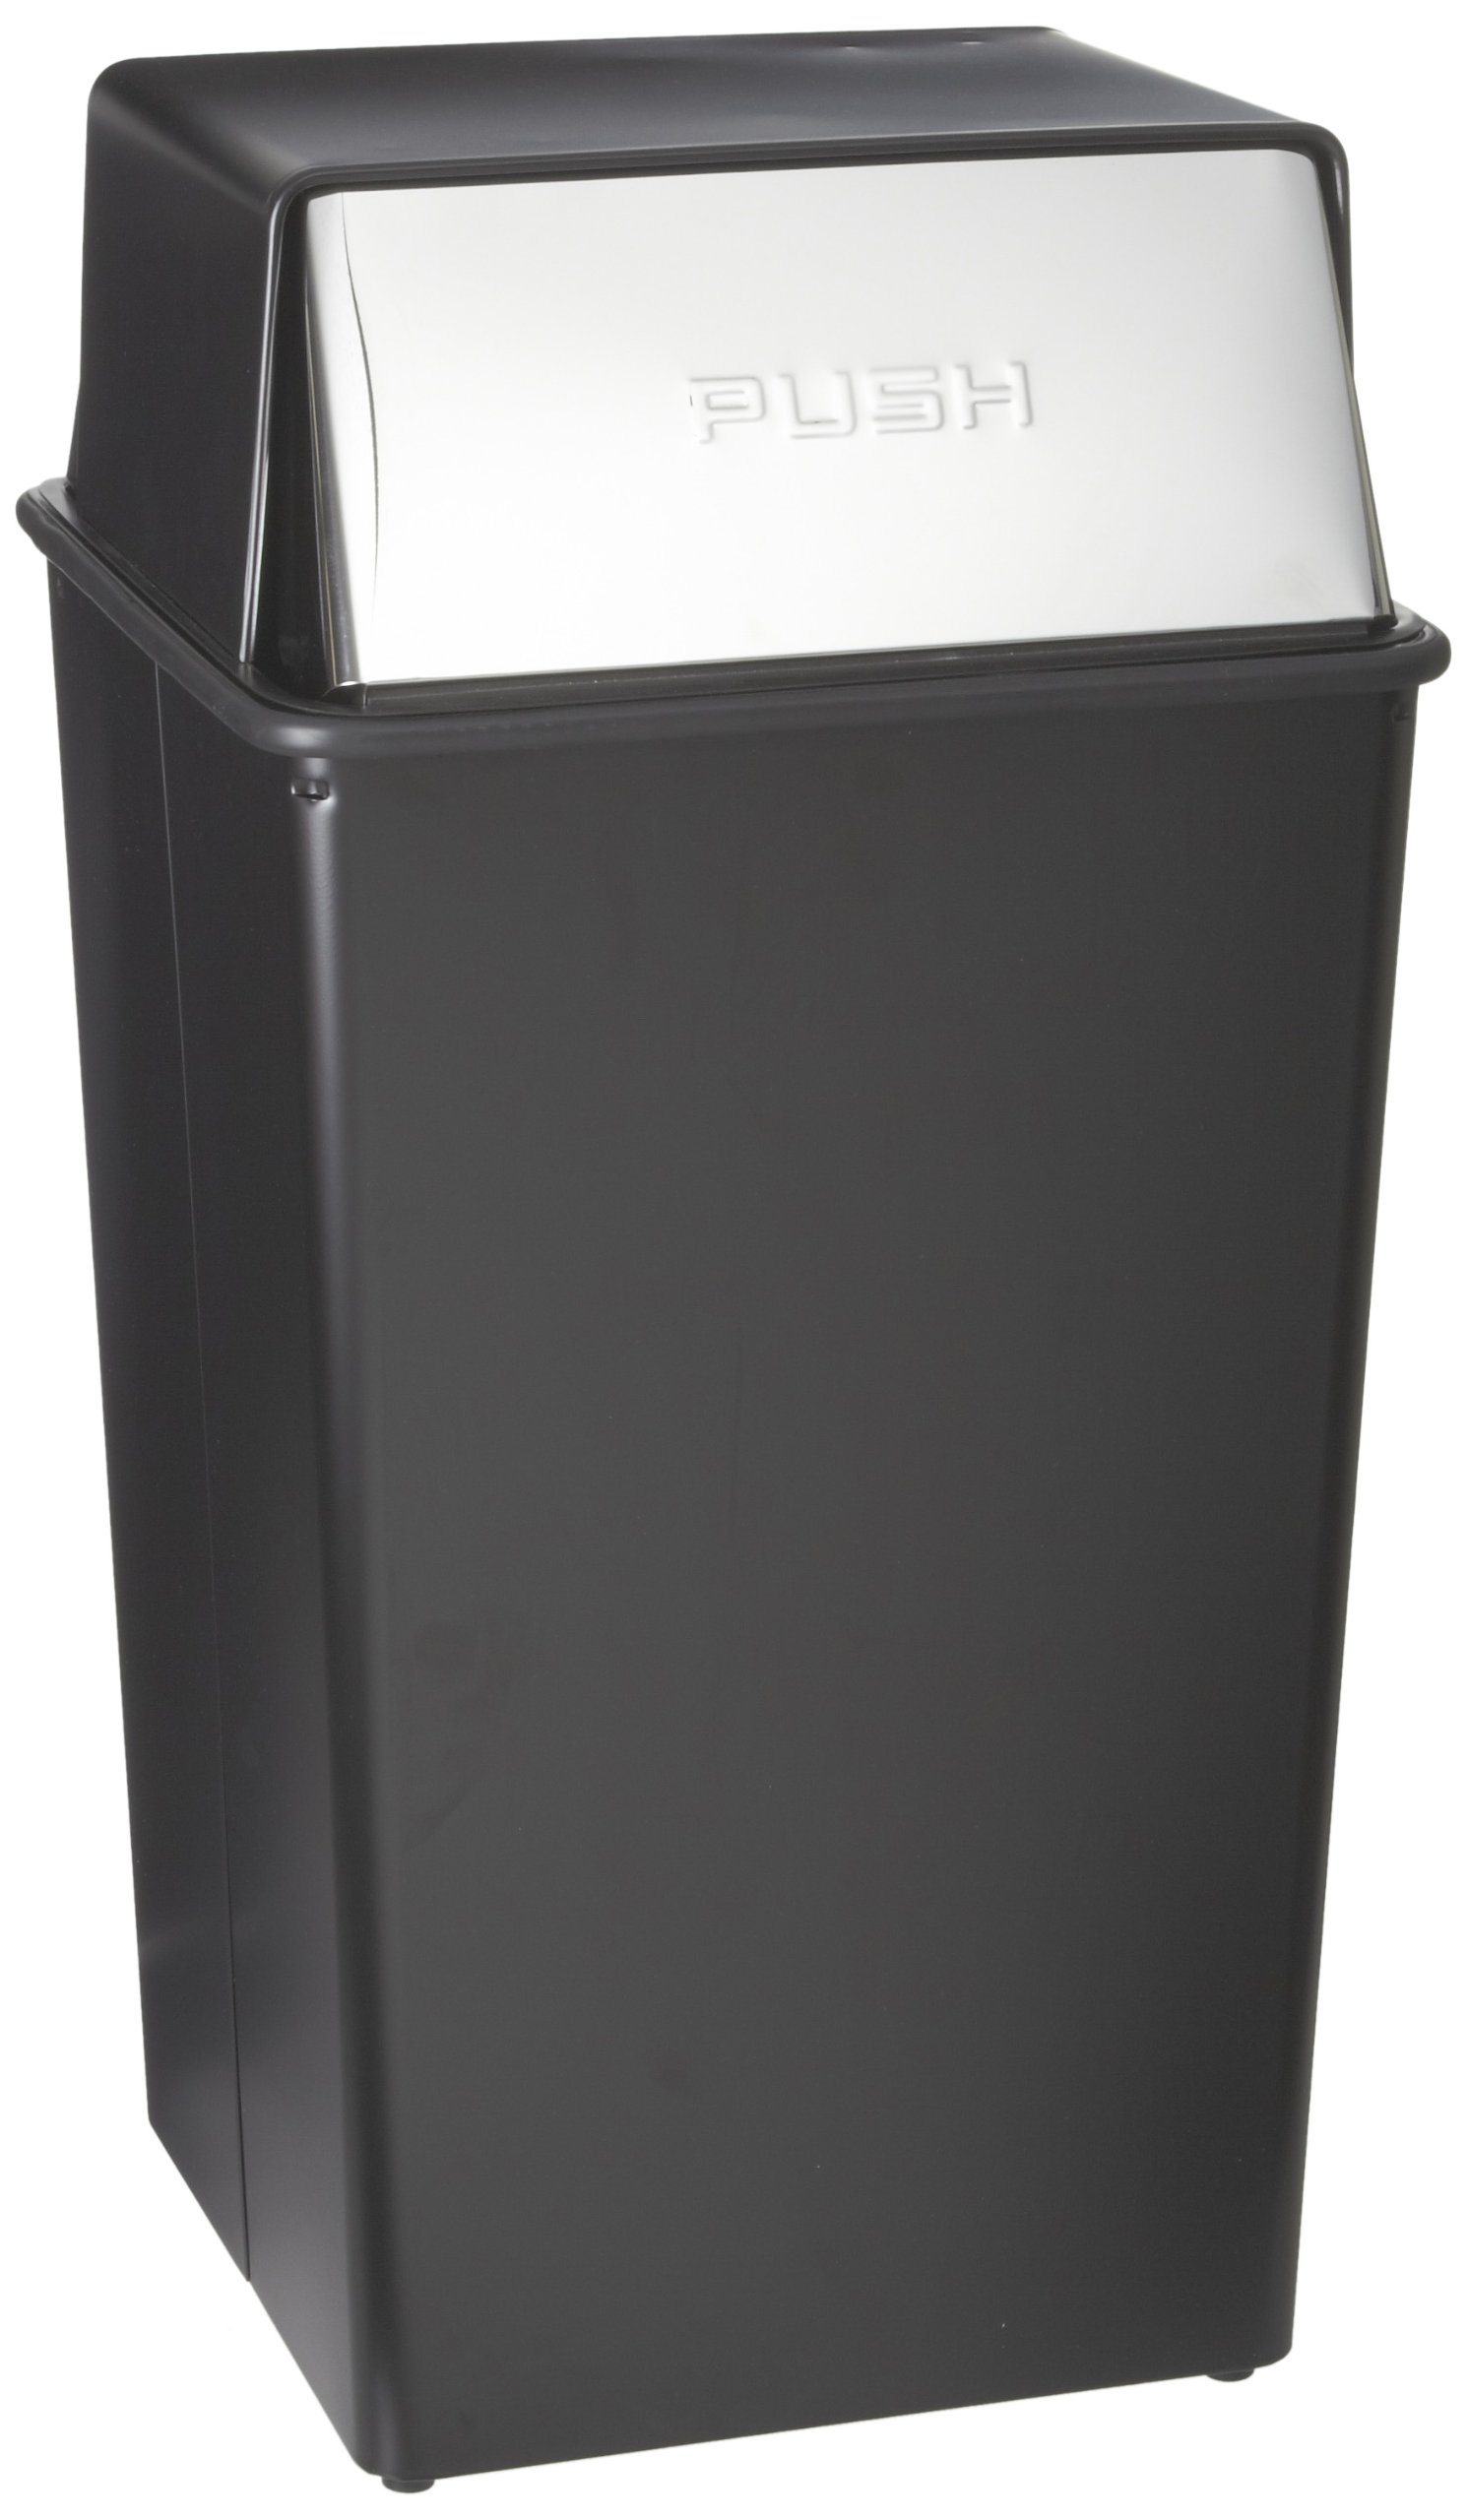 Witt Industries 36HT-22 Steel 36-Gallon Monarch Series Hamper and Push Top Receptacle, Legend ''Push'', Square, 19'' Width x 19'' Depth x 37'' Height, Black by Witt Industries